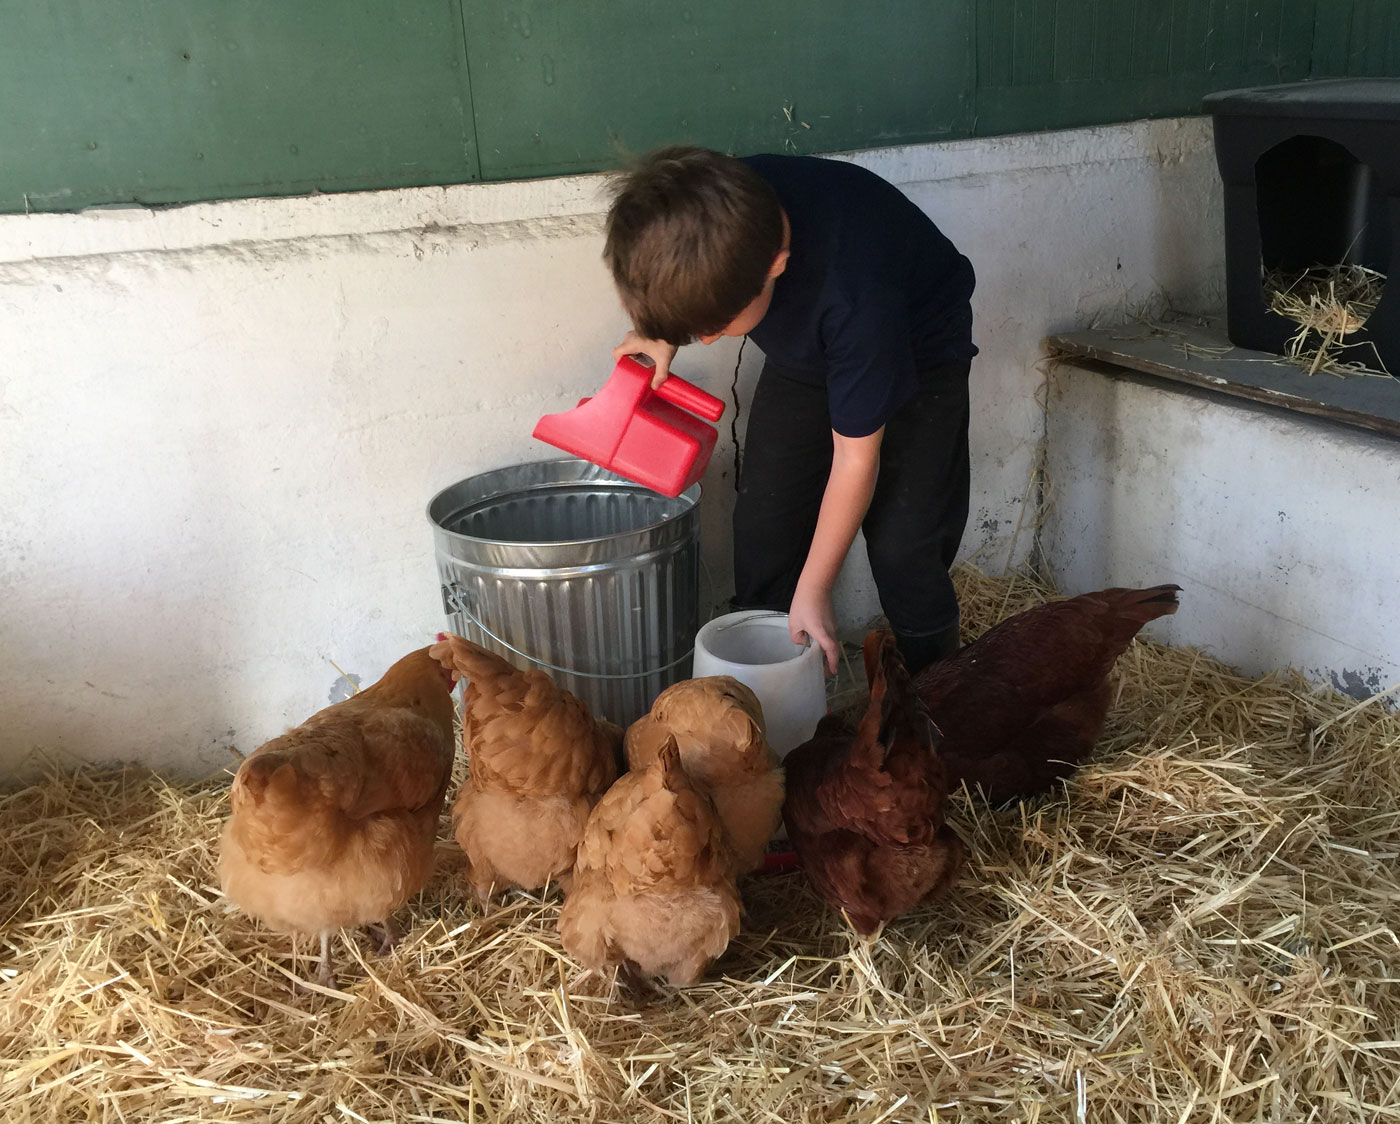 Morning chores: feeding chickens - Little Red Farmstead